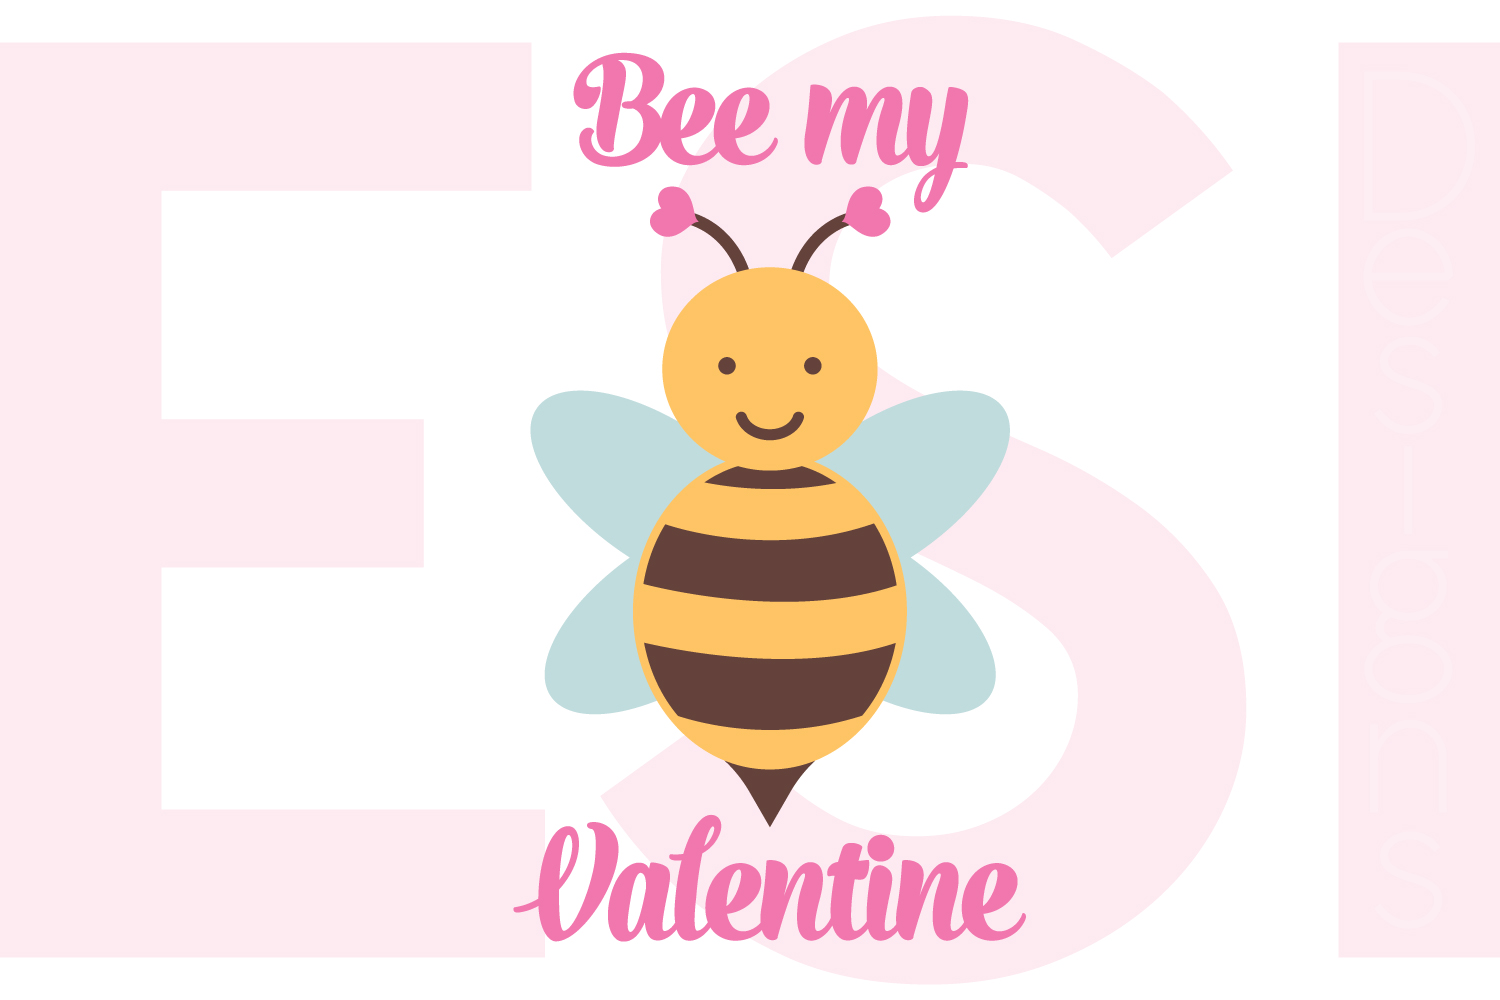 Bee my Valentine Design  example image 1